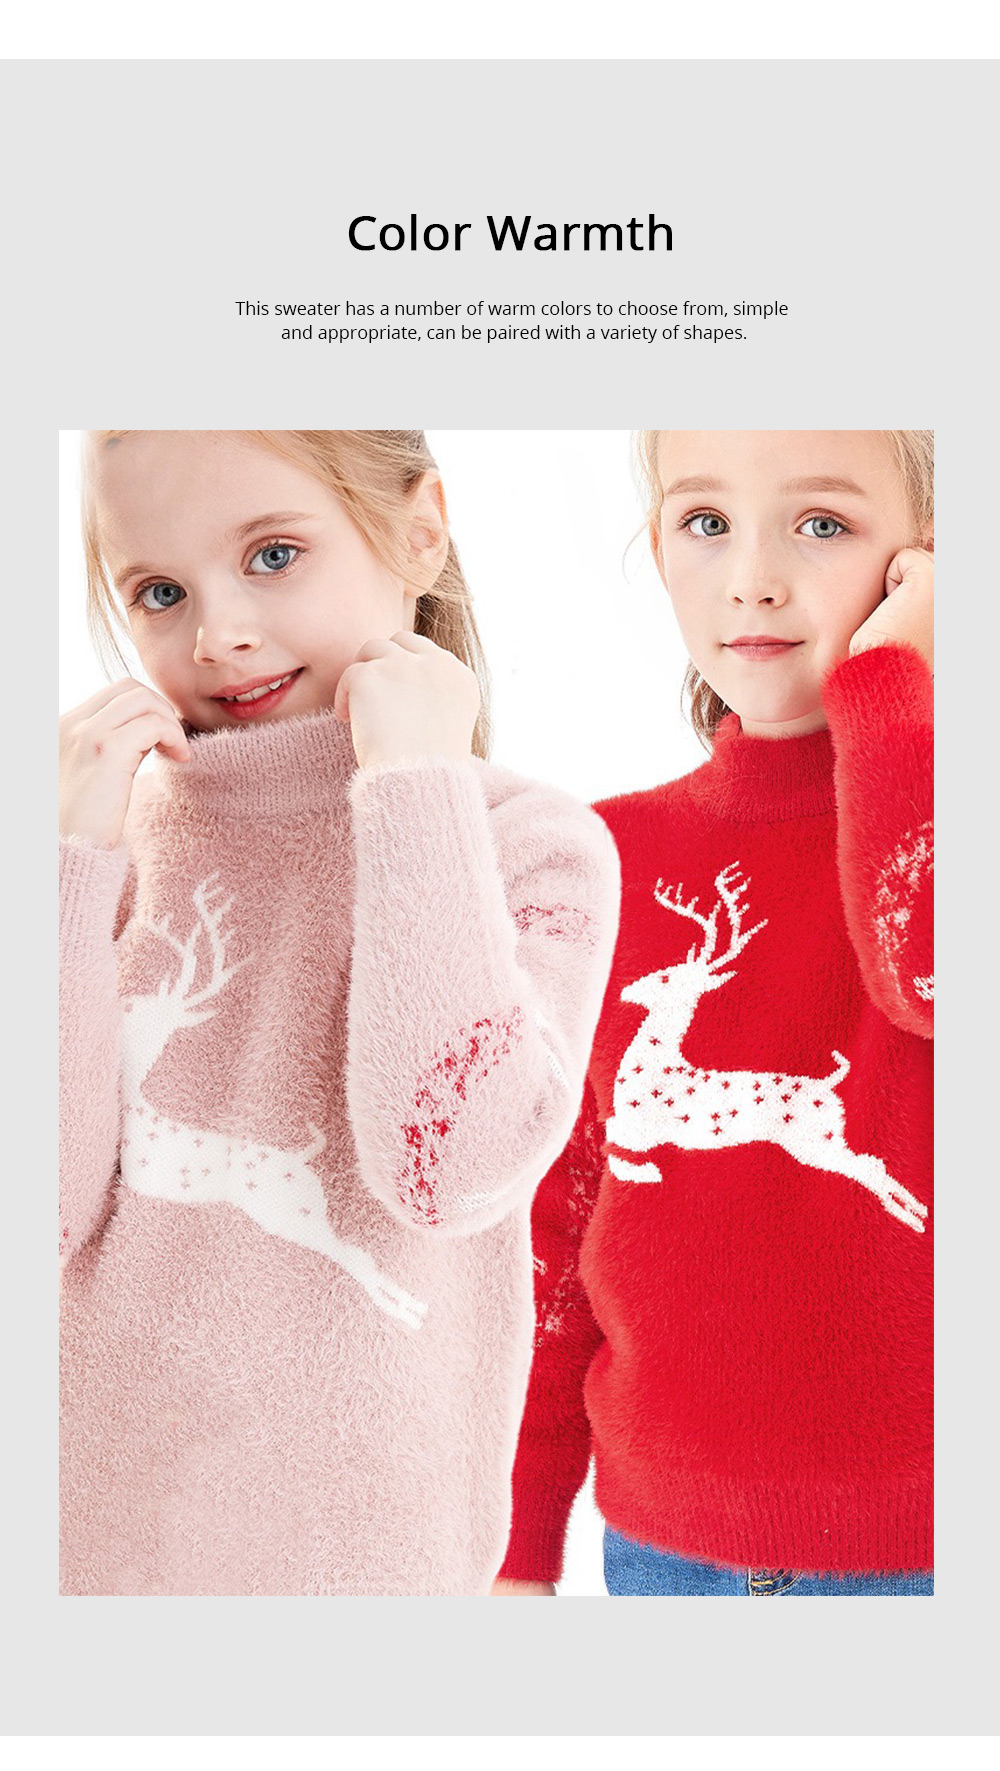 Children's Mink Autumn Warm Coat Winter Girl's Sweater 2019 New Style Girl's Pullover Thickened Top Christmas Gift 4